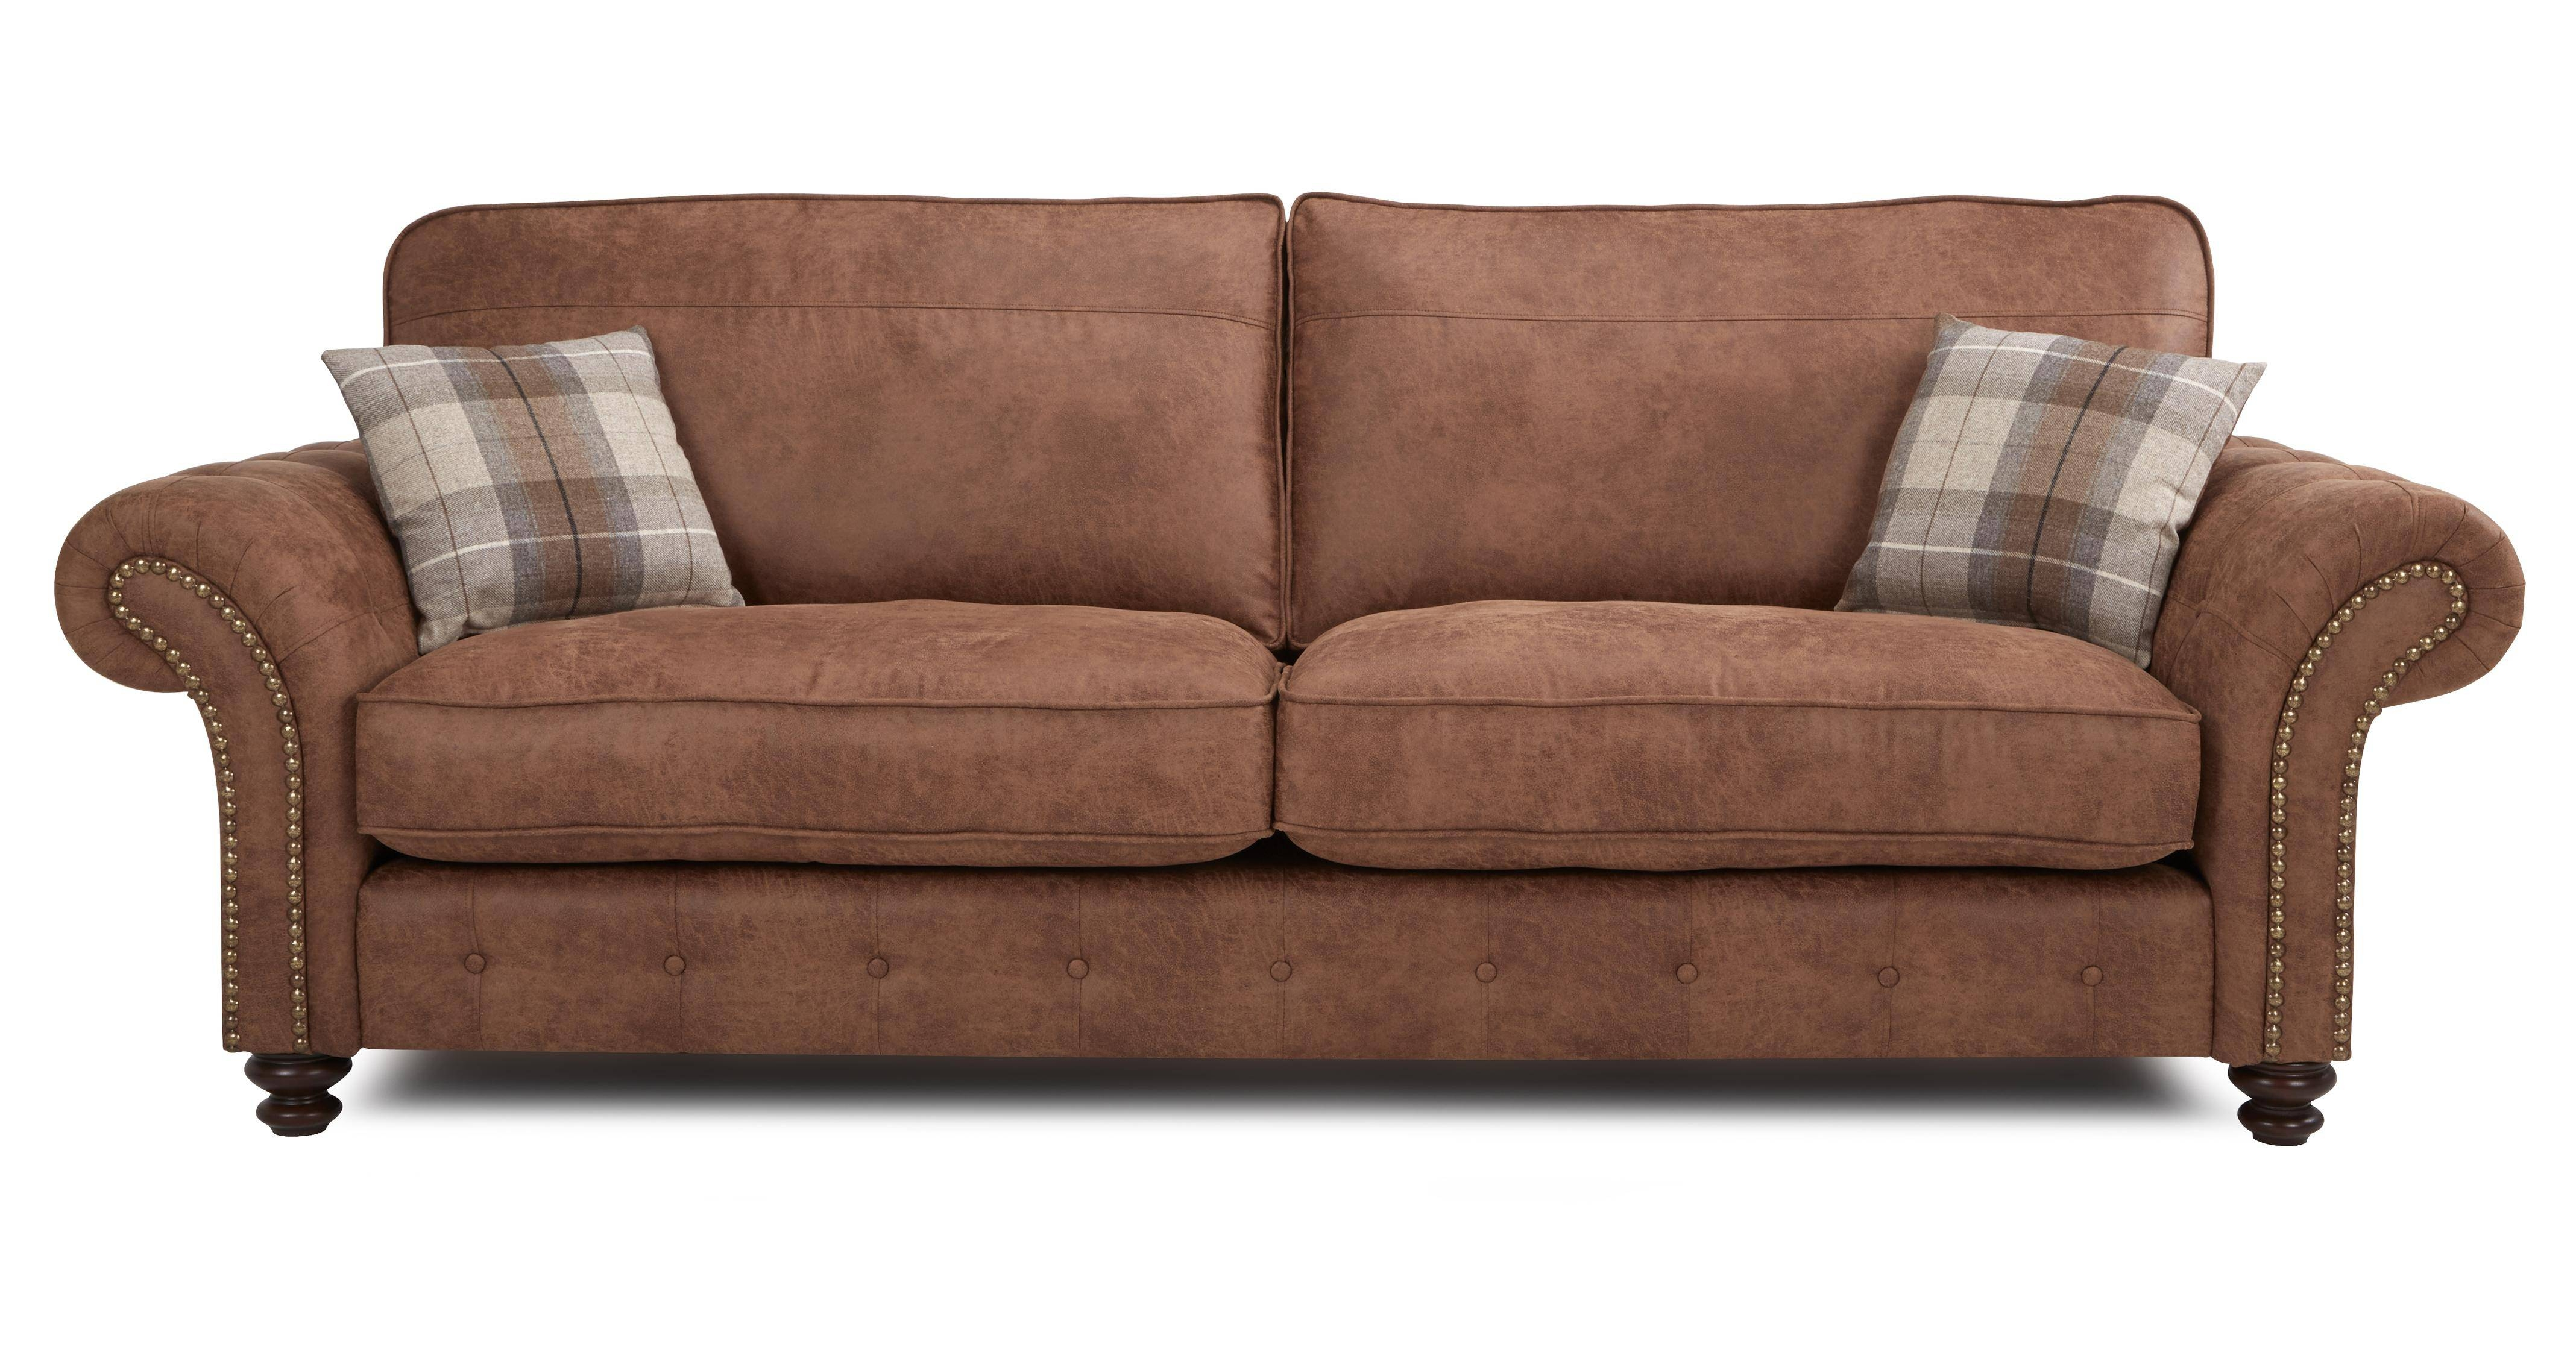 Dfs 4 Seater Leather Sofa 63 With Dfs 4 Seater Leather Sofa For 4 Seat Leather Sofas (View 13 of 30)